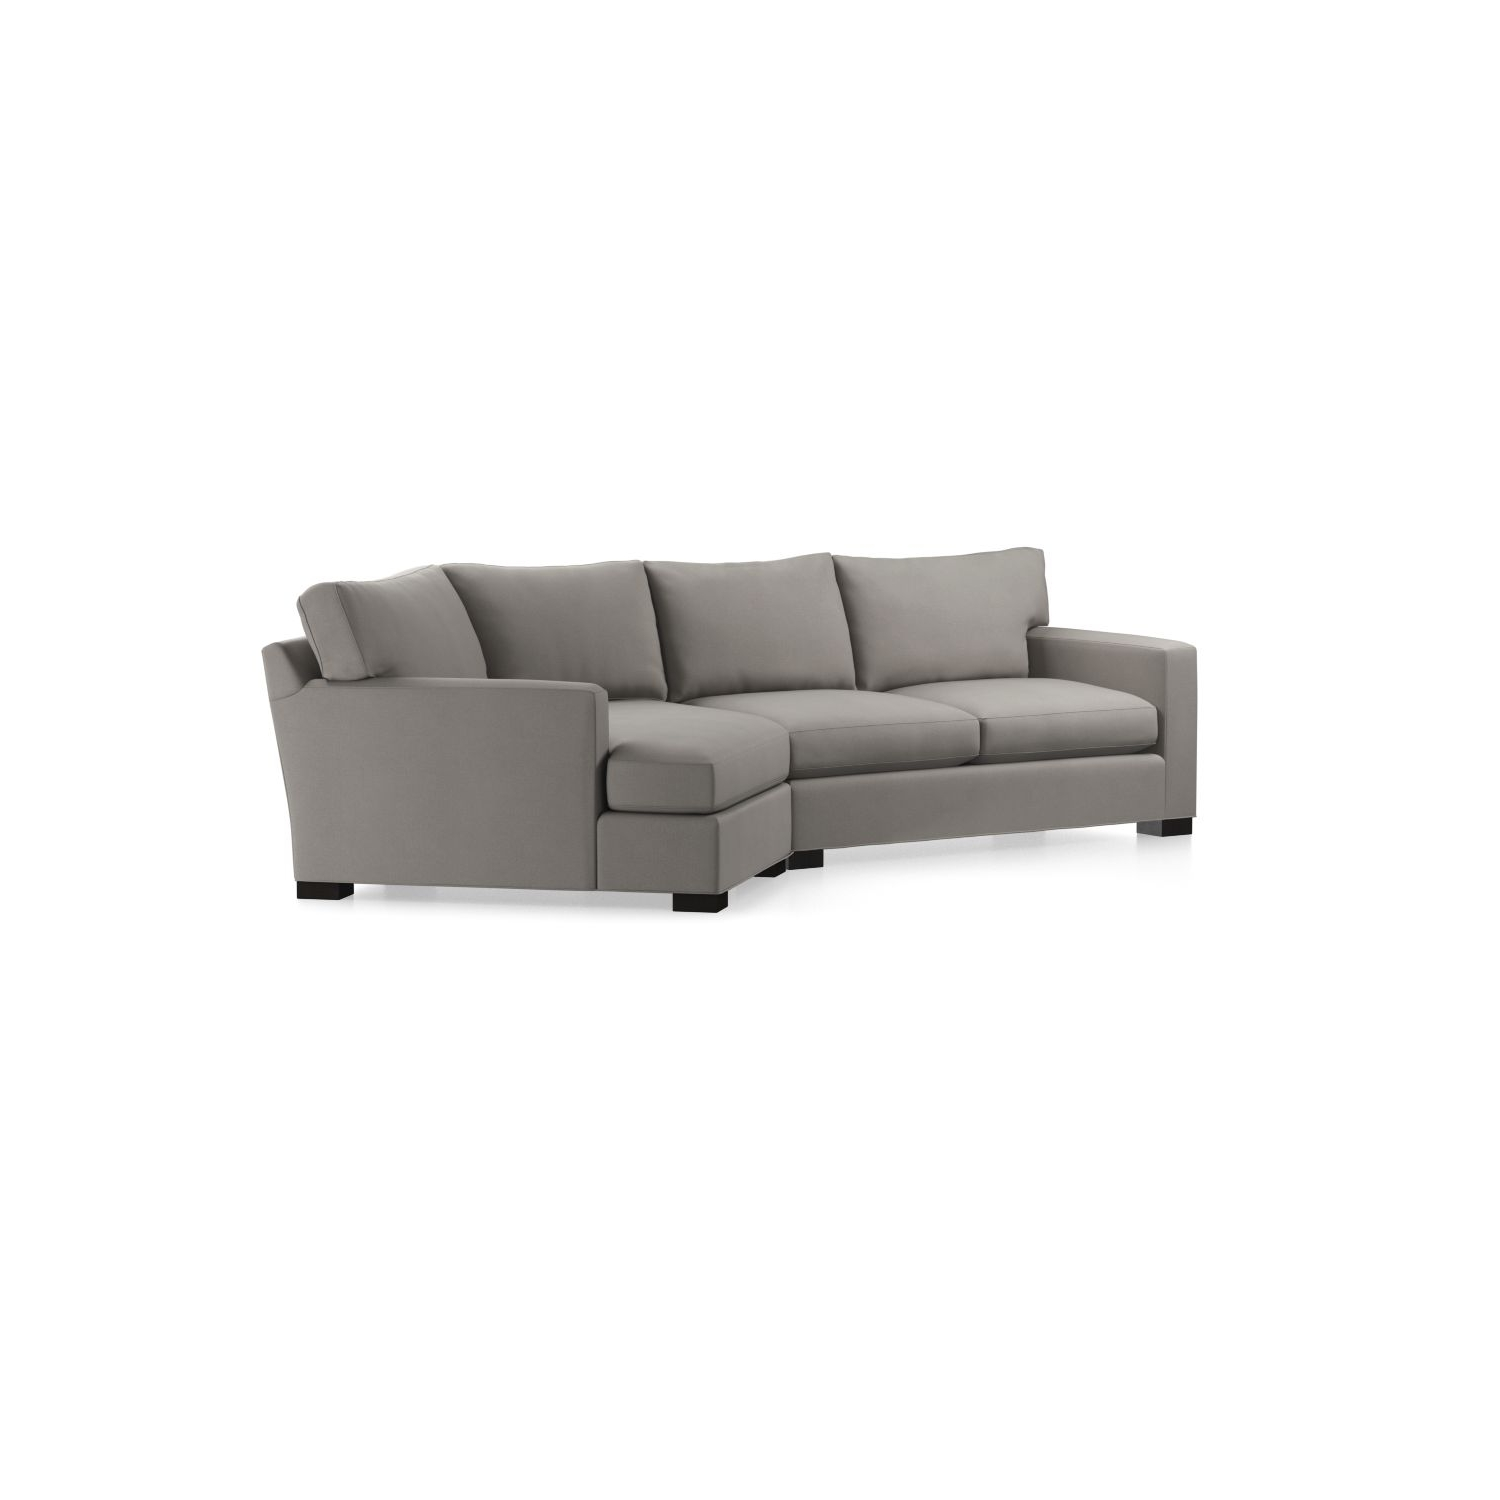 Best And Newest Angled Chaise Sofas Inside Axis Ii 2 Piece Right Arm Angled Chaise Sectional Sofa In Axis (View 5 of 15)